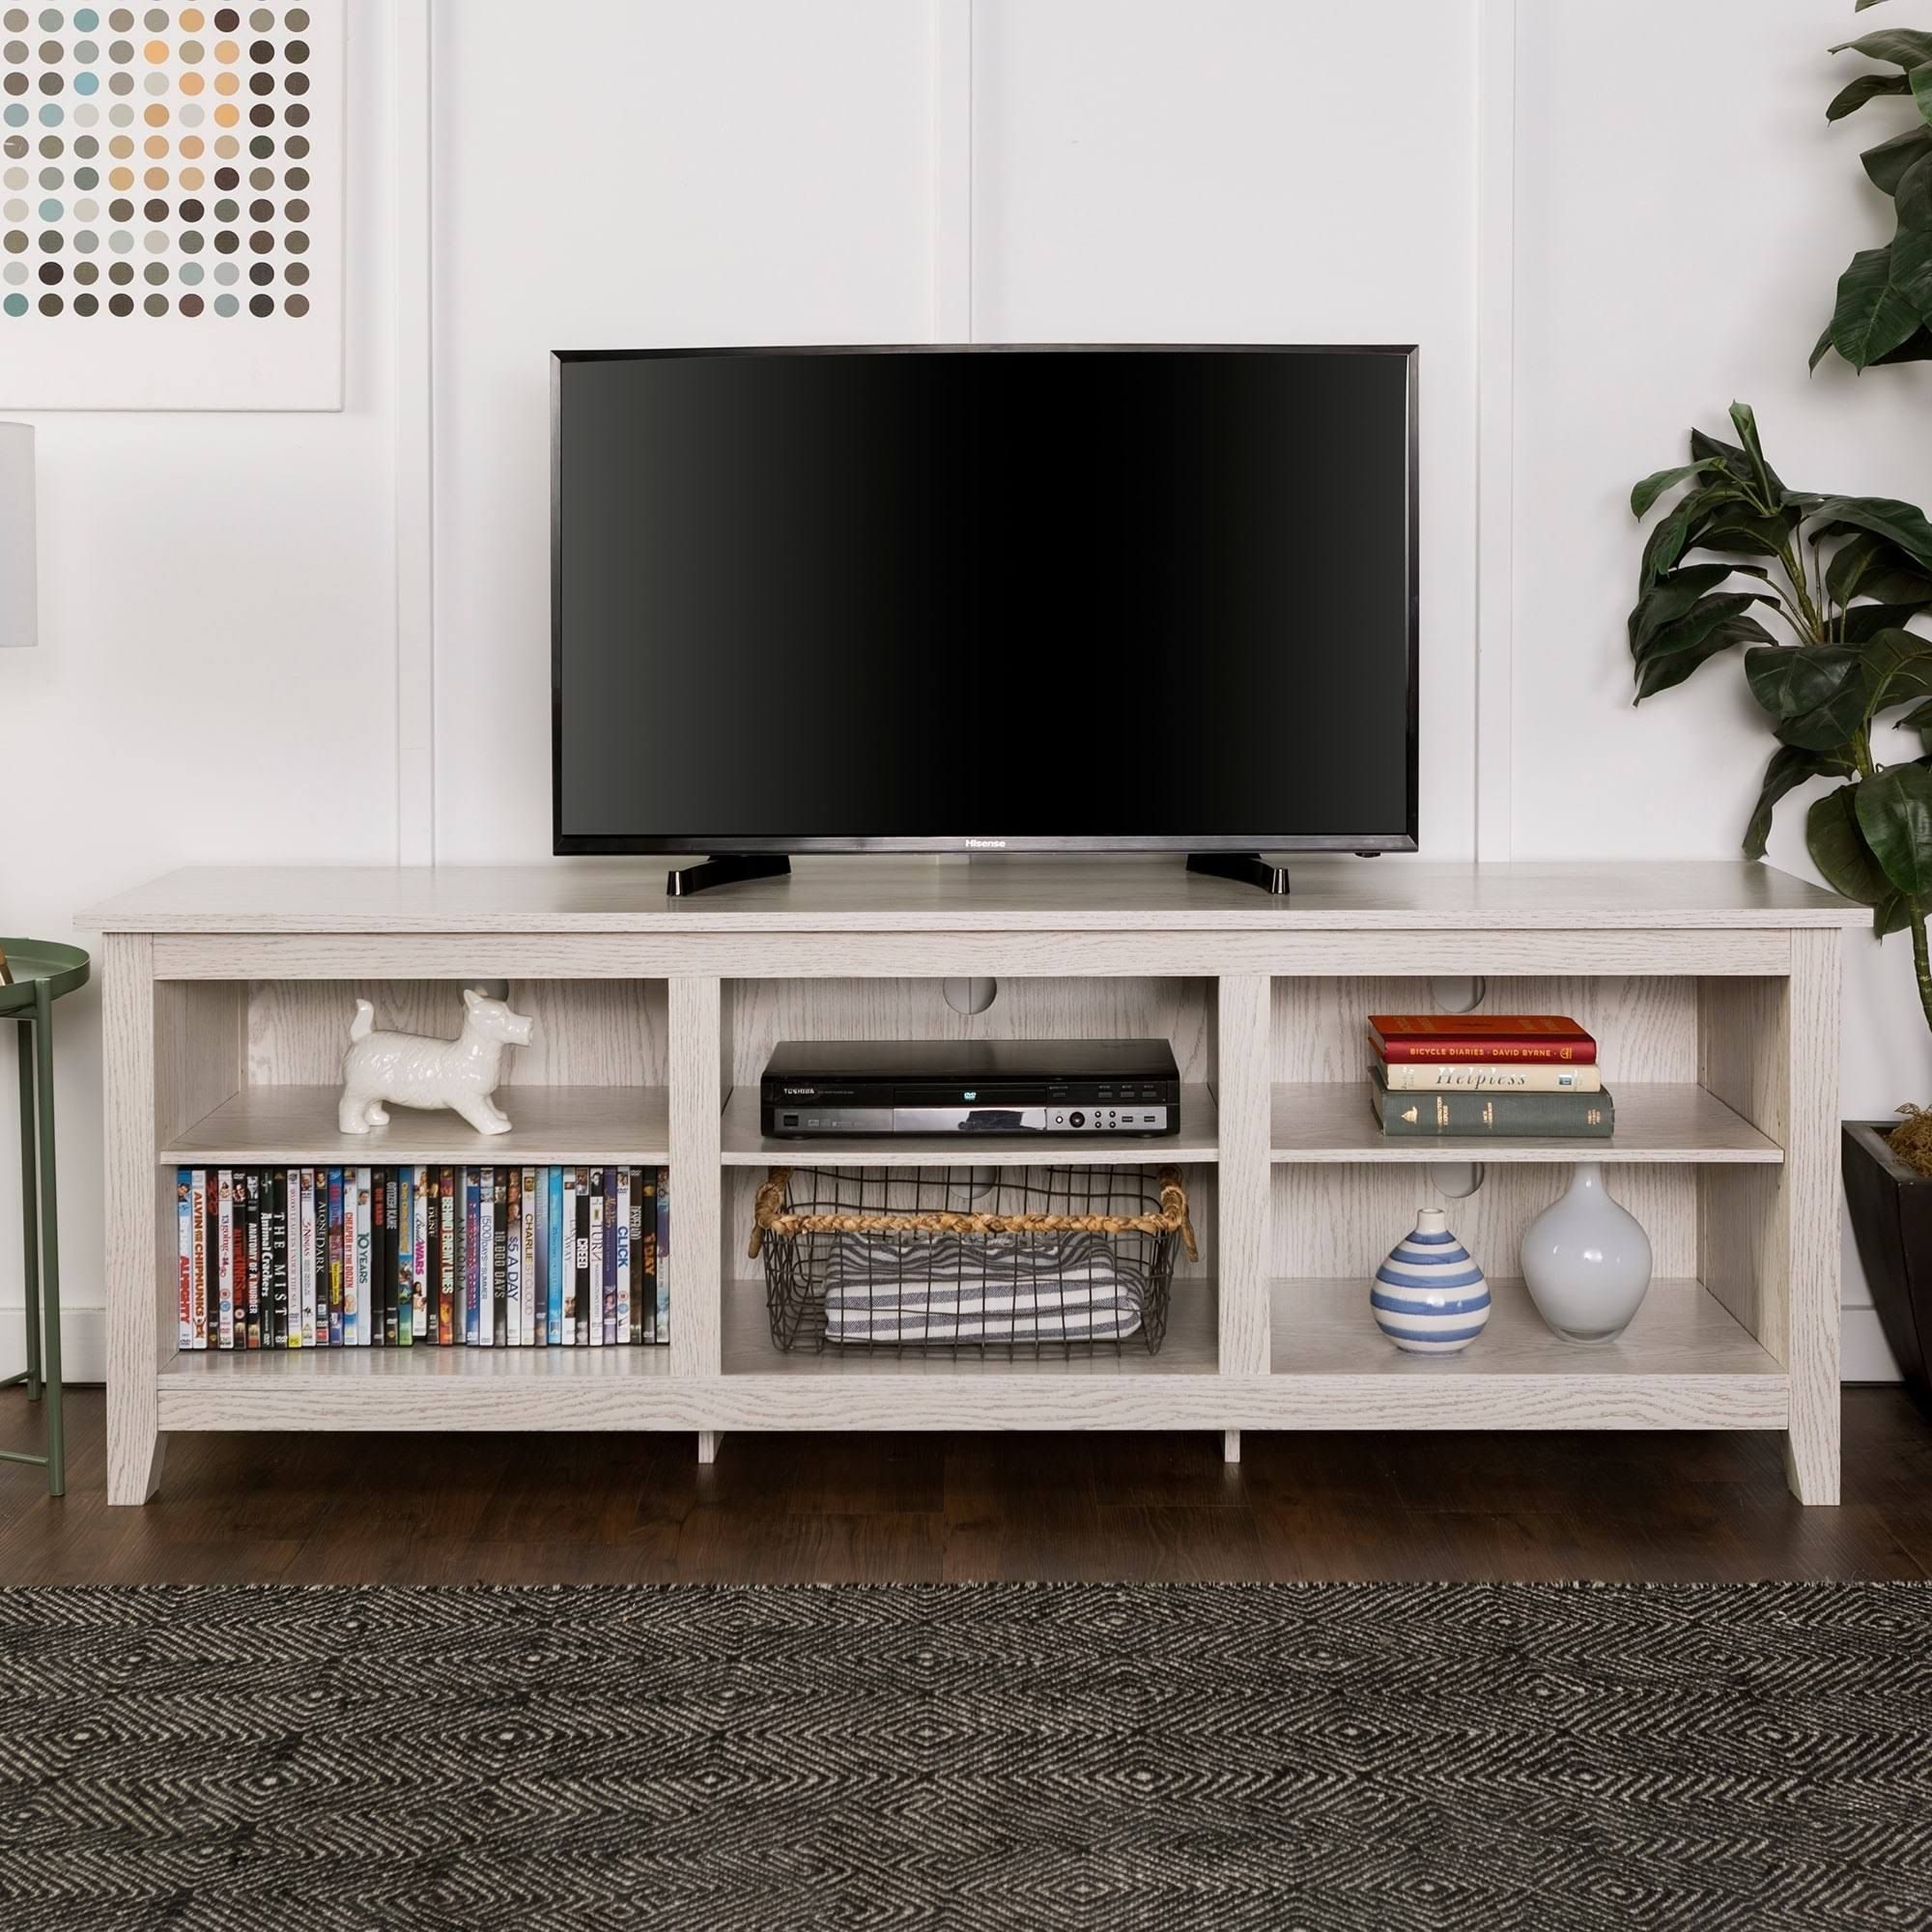 We Furniture 70 Inch Wood Media Tv Stand Storage Console White Wash White Finish With Images Tv Stand Wood Wood Tv Stand Rustic Tv Stand With Storage